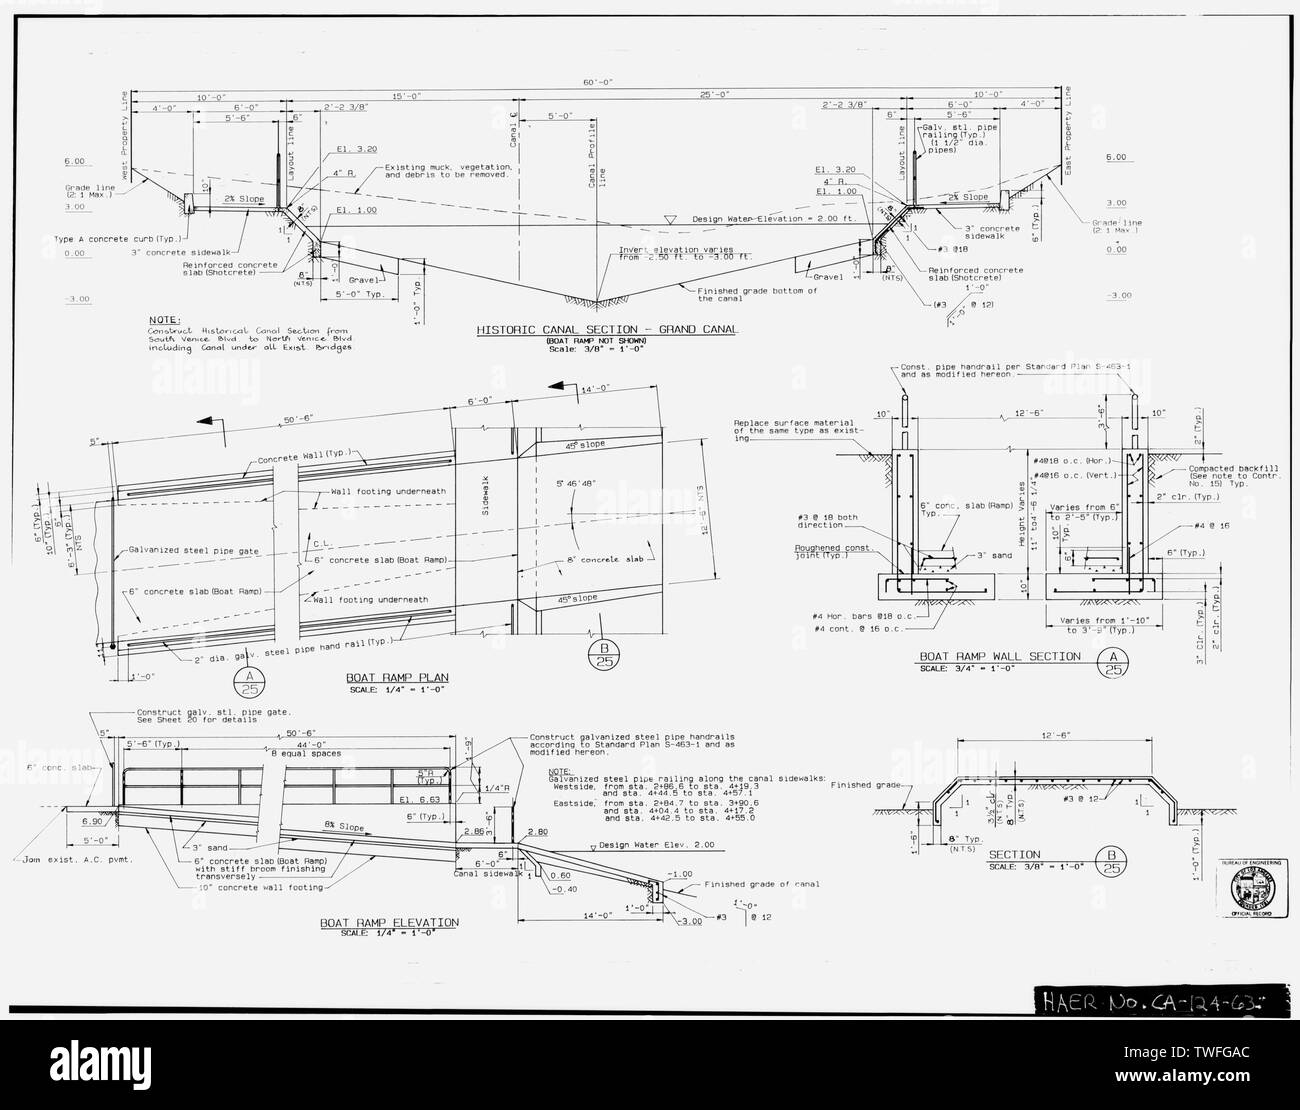 PLANS FOR PROPOSED HISTORICAL CANAL SECTION AND PUBLIC BOAT LAUNCH RAMP Plan Sheet D-29976, Venice Canals Rehabilitation, Sheet 25 of 26 (delineated by Manuel Bartolome, November 1991) - Venice Canals, Community of Venice, Los Angeles, Los Angeles County, CA - Stock Image